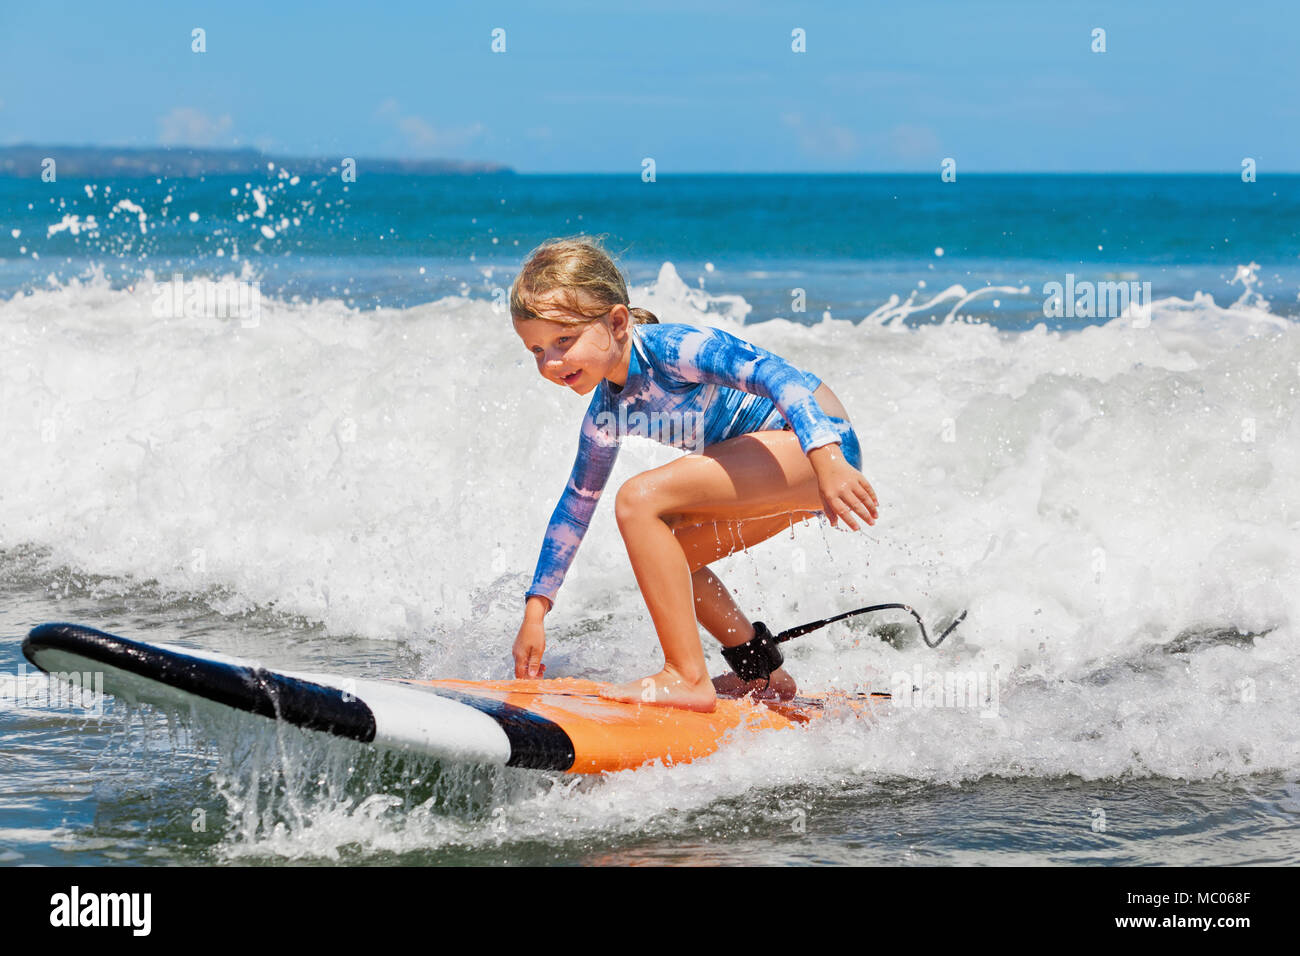 Happy baby girl - young surfer ride on surfboard with fun on sea wave Active family lifestyle, kids outdoor water sport lessons and beach activities - Stock Image